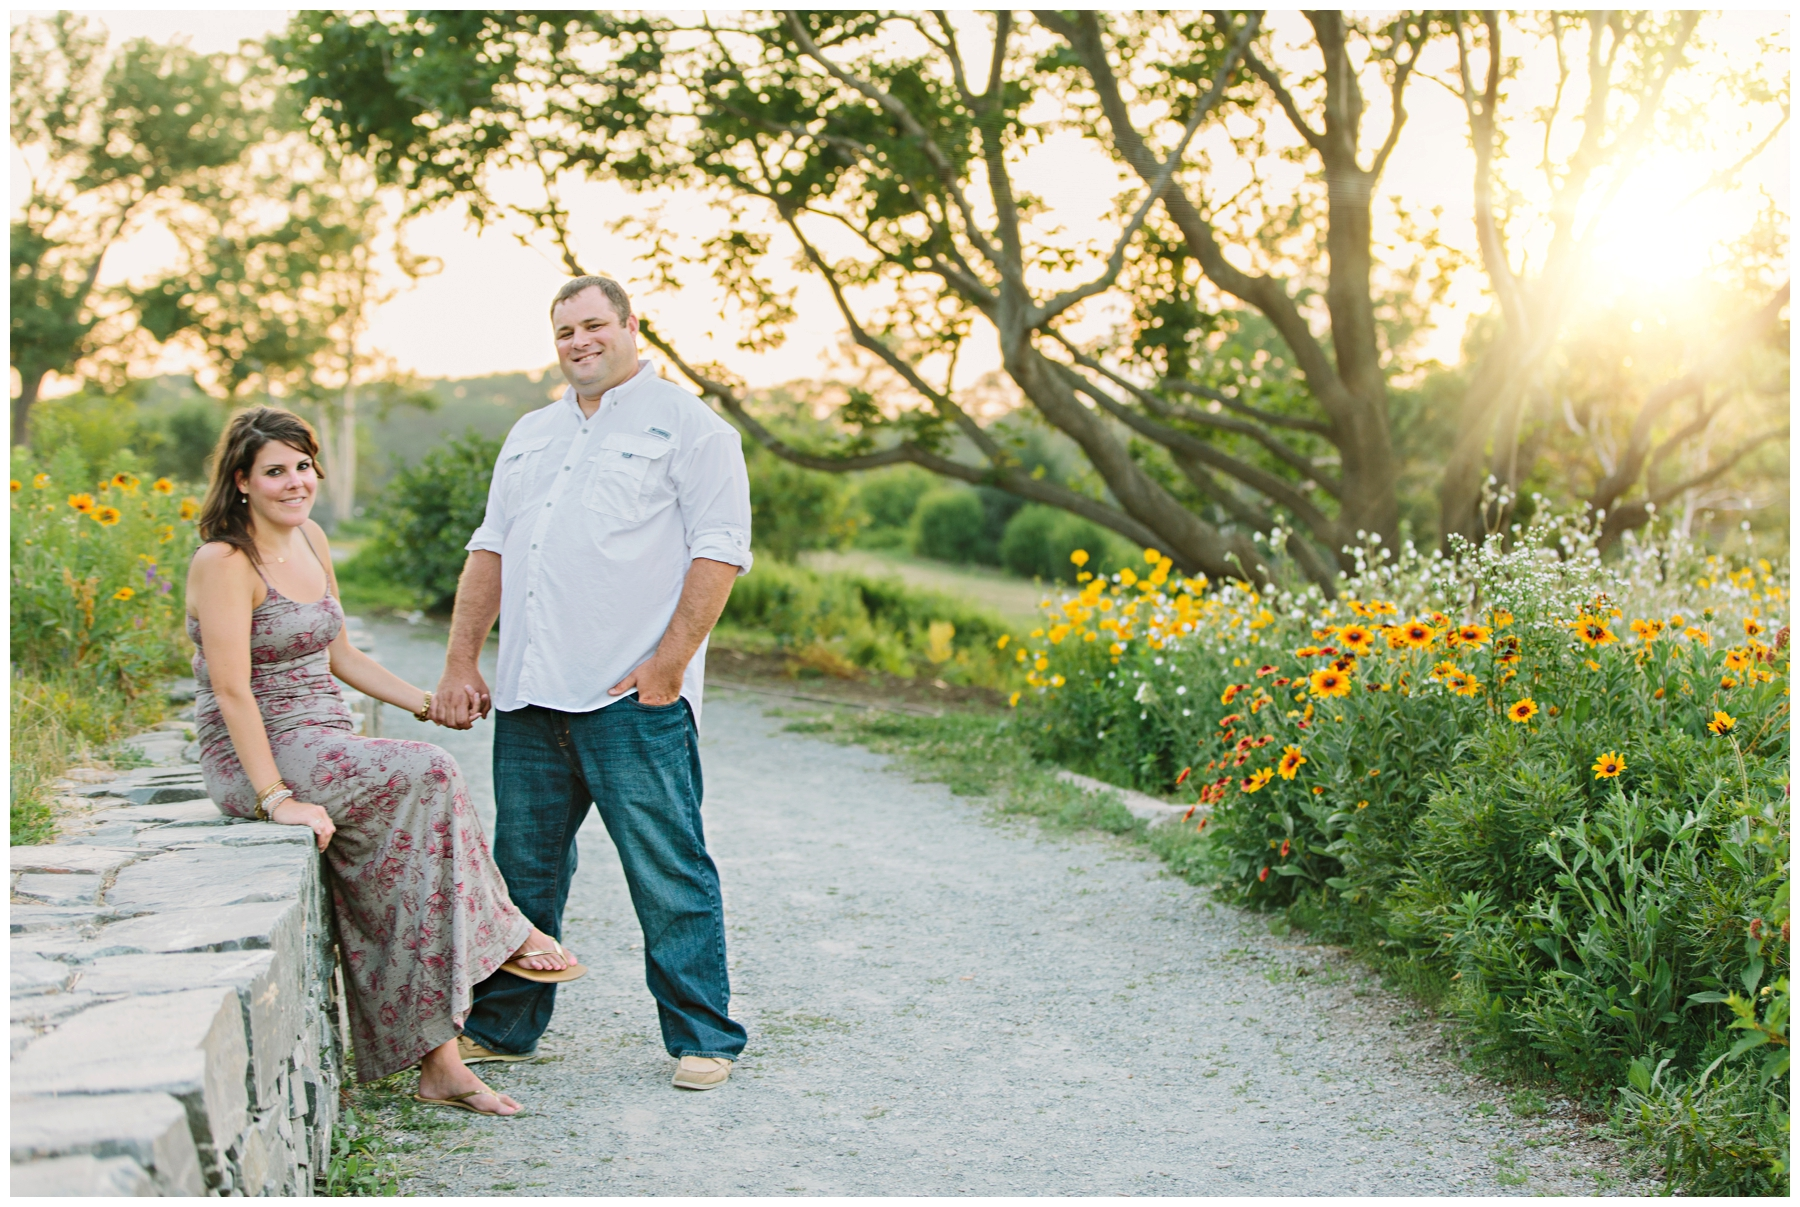 Maine_Photographer_Engagements_FortWilliams_PortlandHeadLight_lighthouse_coastal_seaside-015